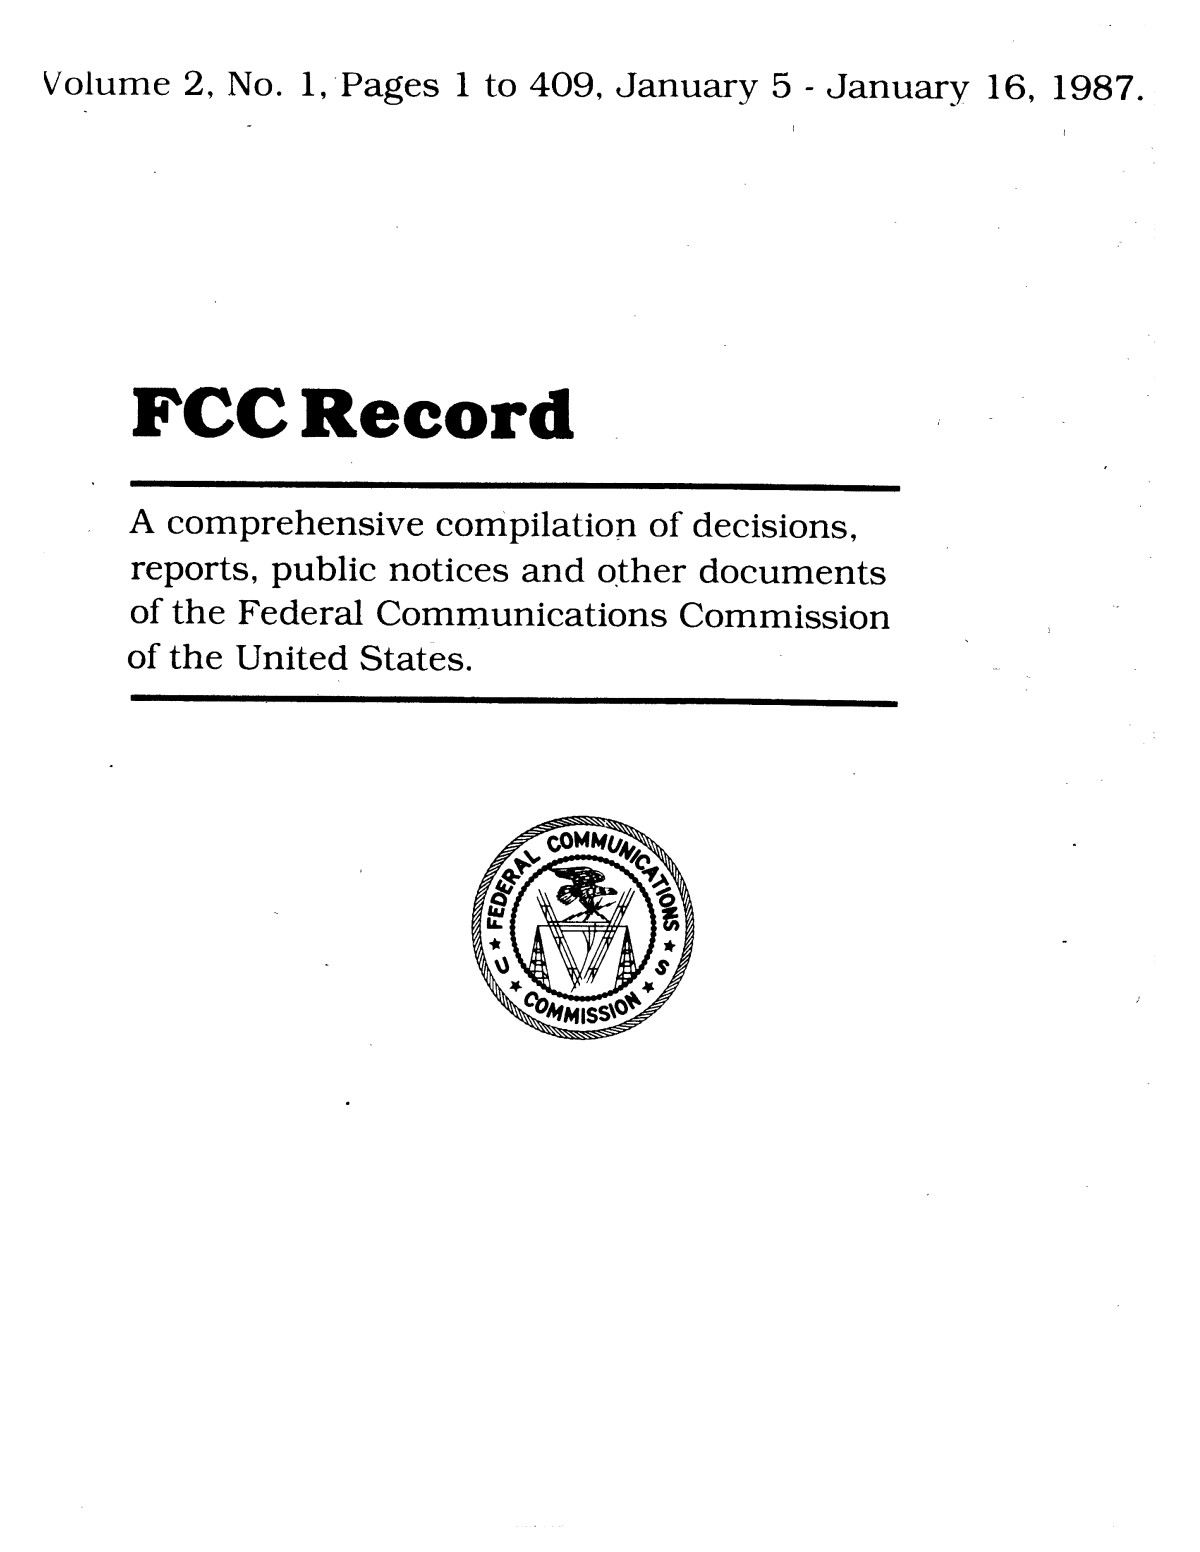 FCC Record, Volume 2, No. 1, Pages 1 to 409, January 5 - January 16, 1987                                                                                                      Front Cover